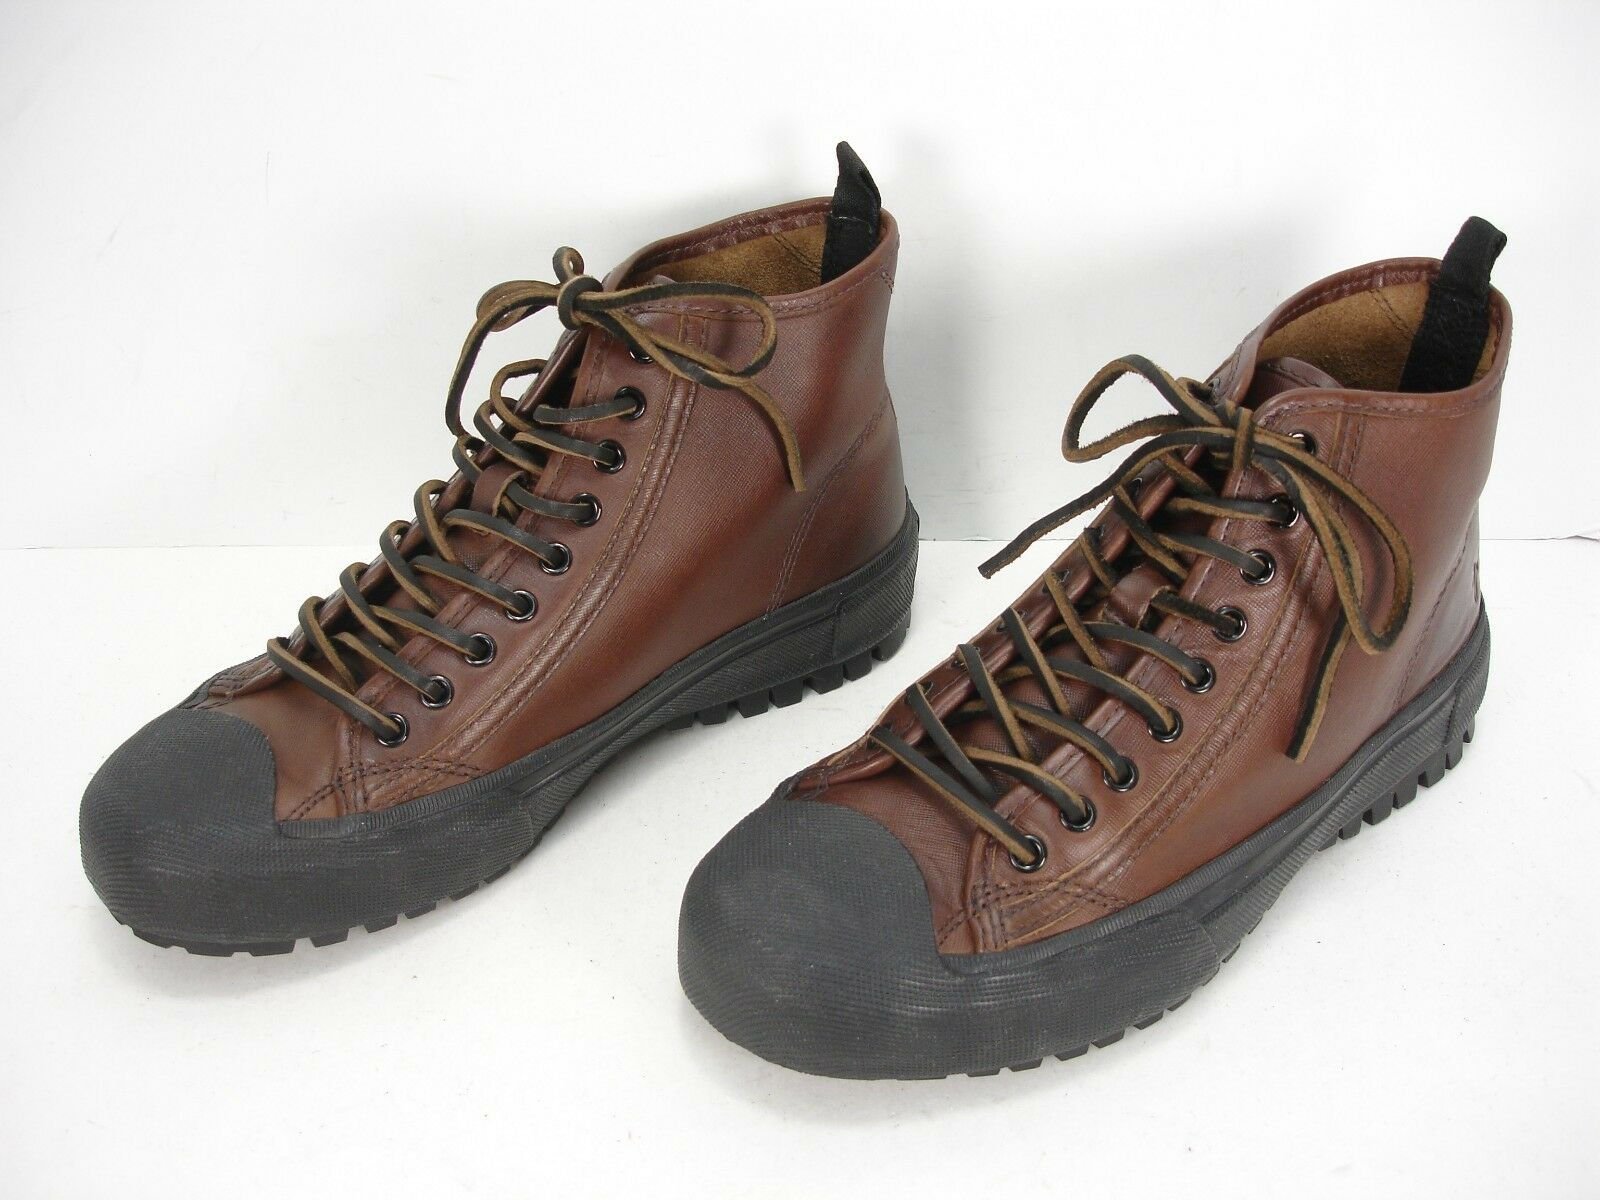 FRYE RYAN LUG MIDLACE 3481153 BROWN LEATHER FASHION SNEAKERS SHOES MEN'S 7